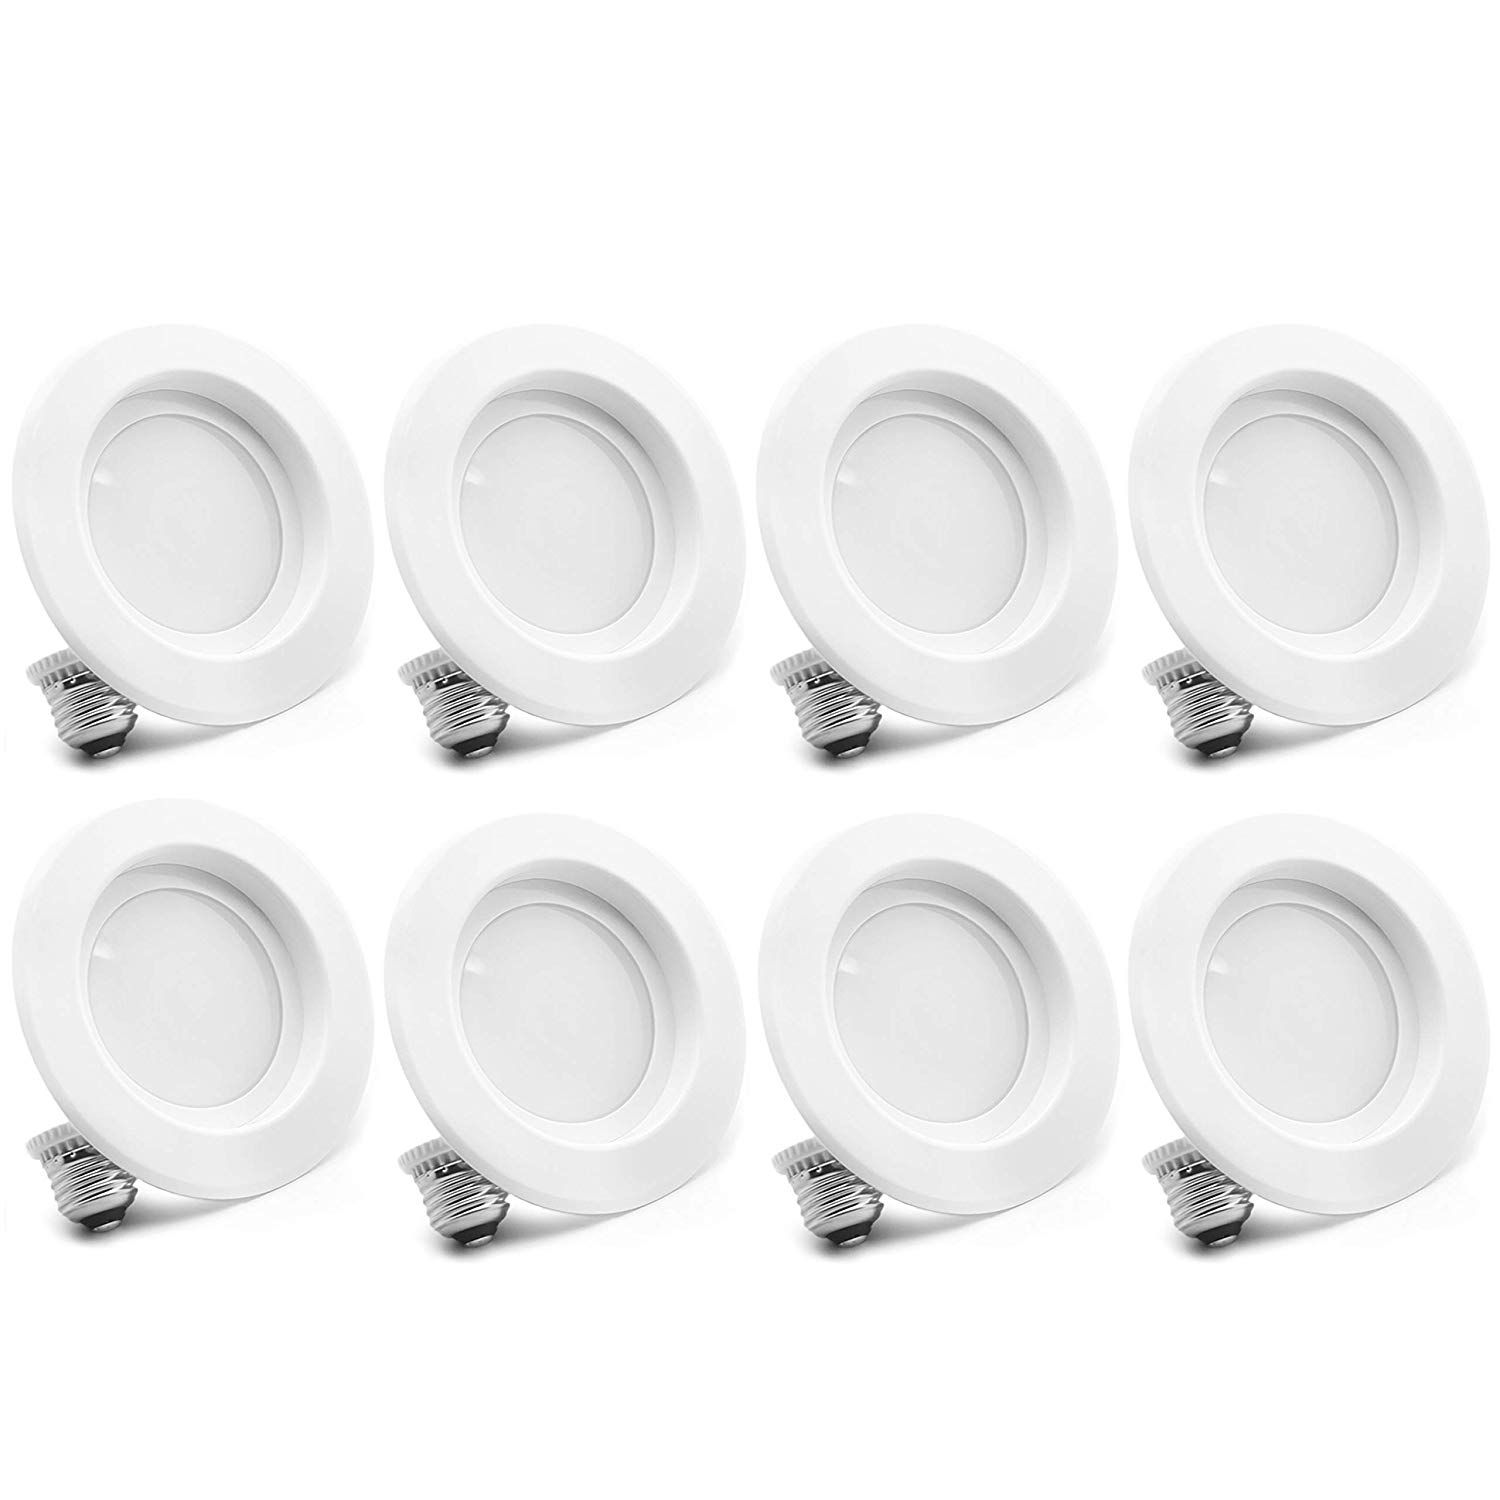 8 Pack Bioluz Led 4 Inch 12watt 90 Cri Dimmable Led Retrofit Recessed Lighting Fixture 2700k Recessed Lighting Retrofit Recessed Lighting Led Ceiling Lights